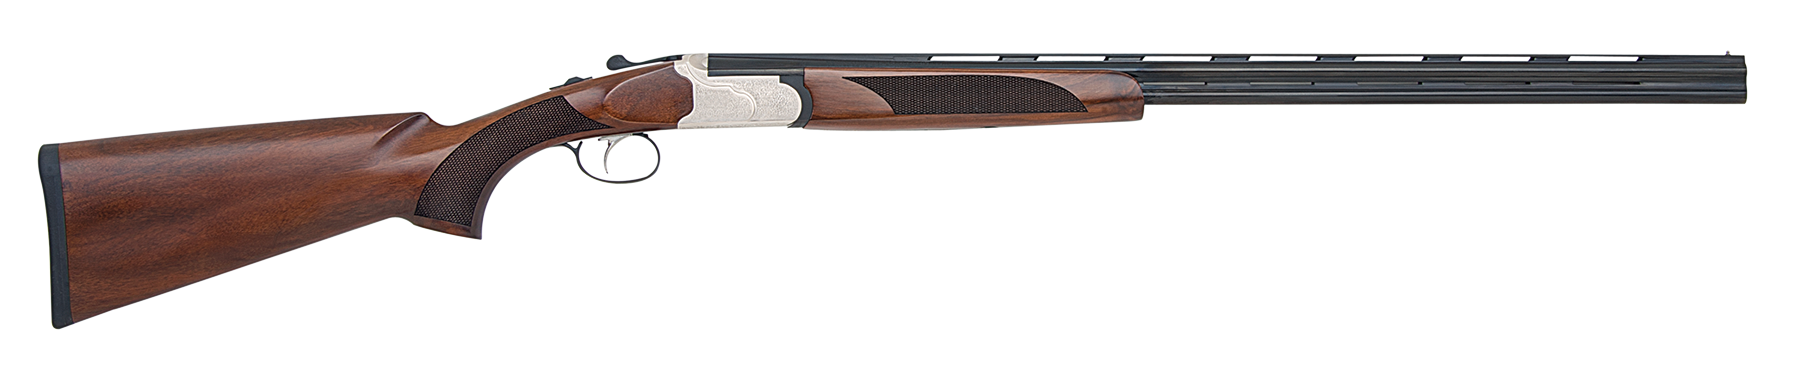 Mossberg Silver Reserve II Field Over/Under Shotgun 3'' 410 Bore 26'' Silver Engraved - Black Walnut